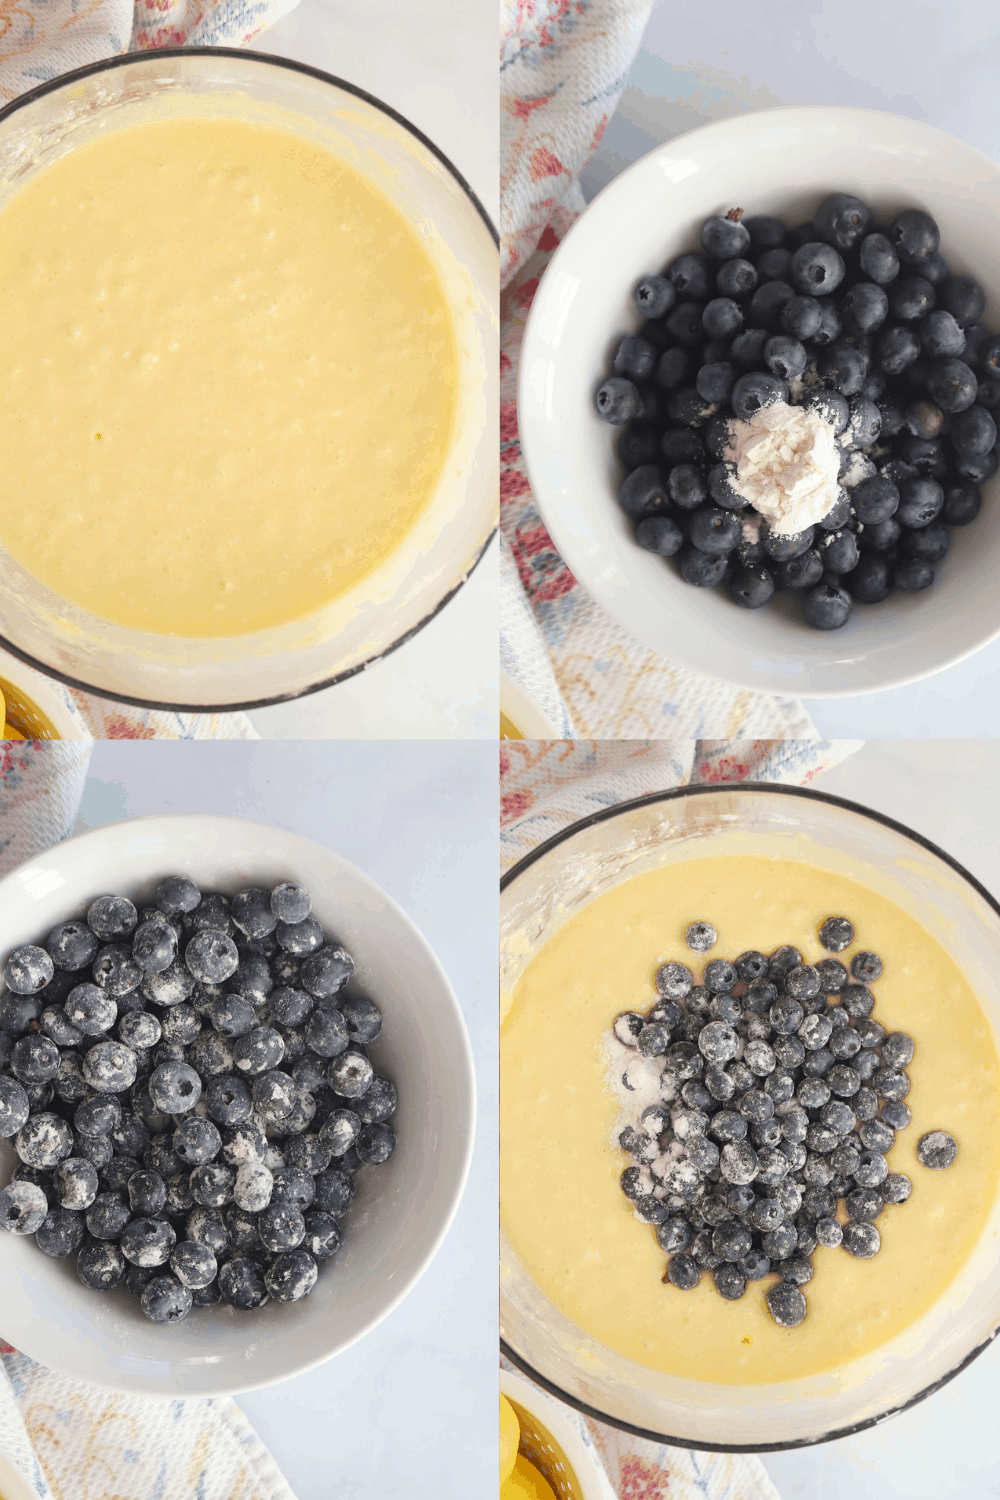 Four photos showing the steps for mixing the mini loaf batter.